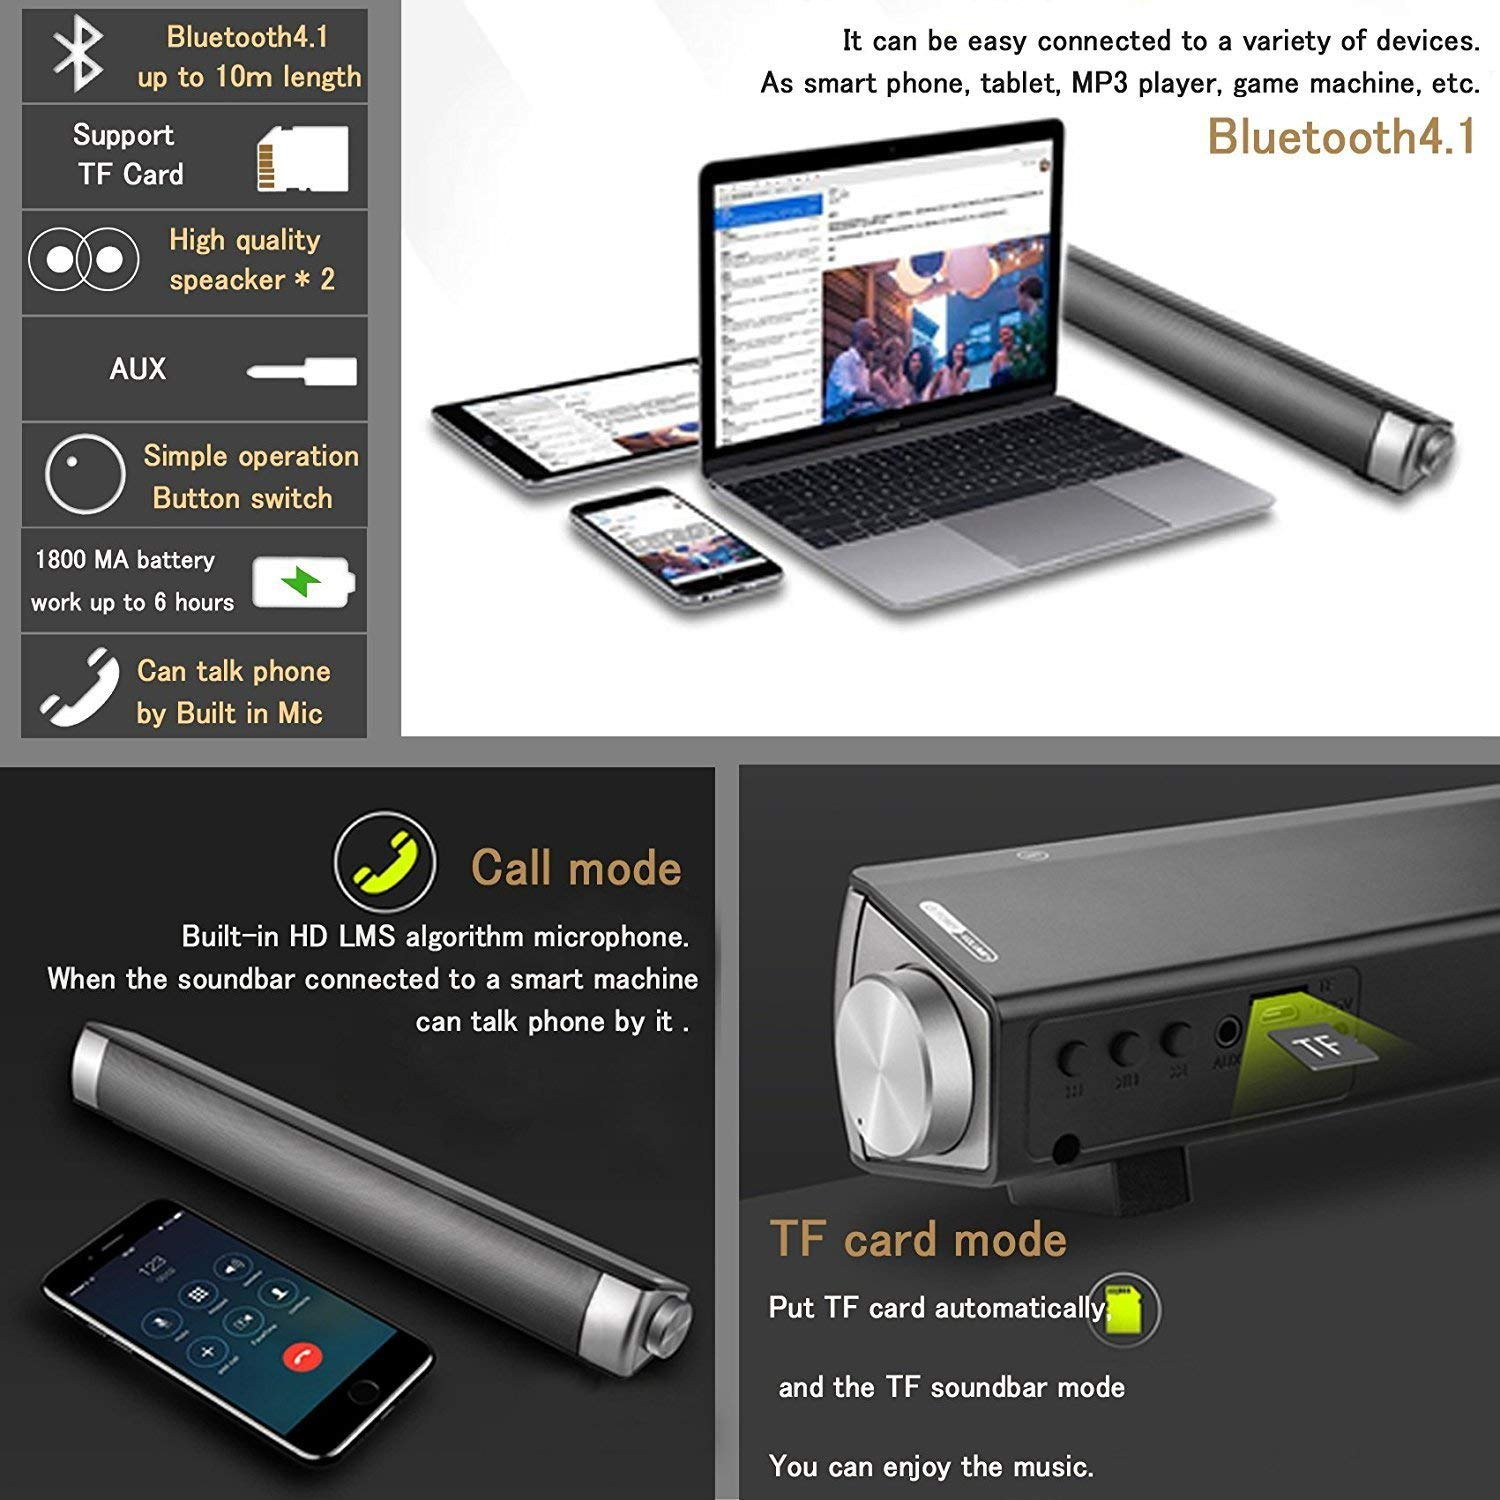 Sound Bar TV Soundbar Wired and Wireless Bluetooth Home Theater TV Speaker, Surround Sound Bar for TV, PC, Cellphone (Only Fit for AUX & RCA Audio output tv) by FoolHome (Image #5)